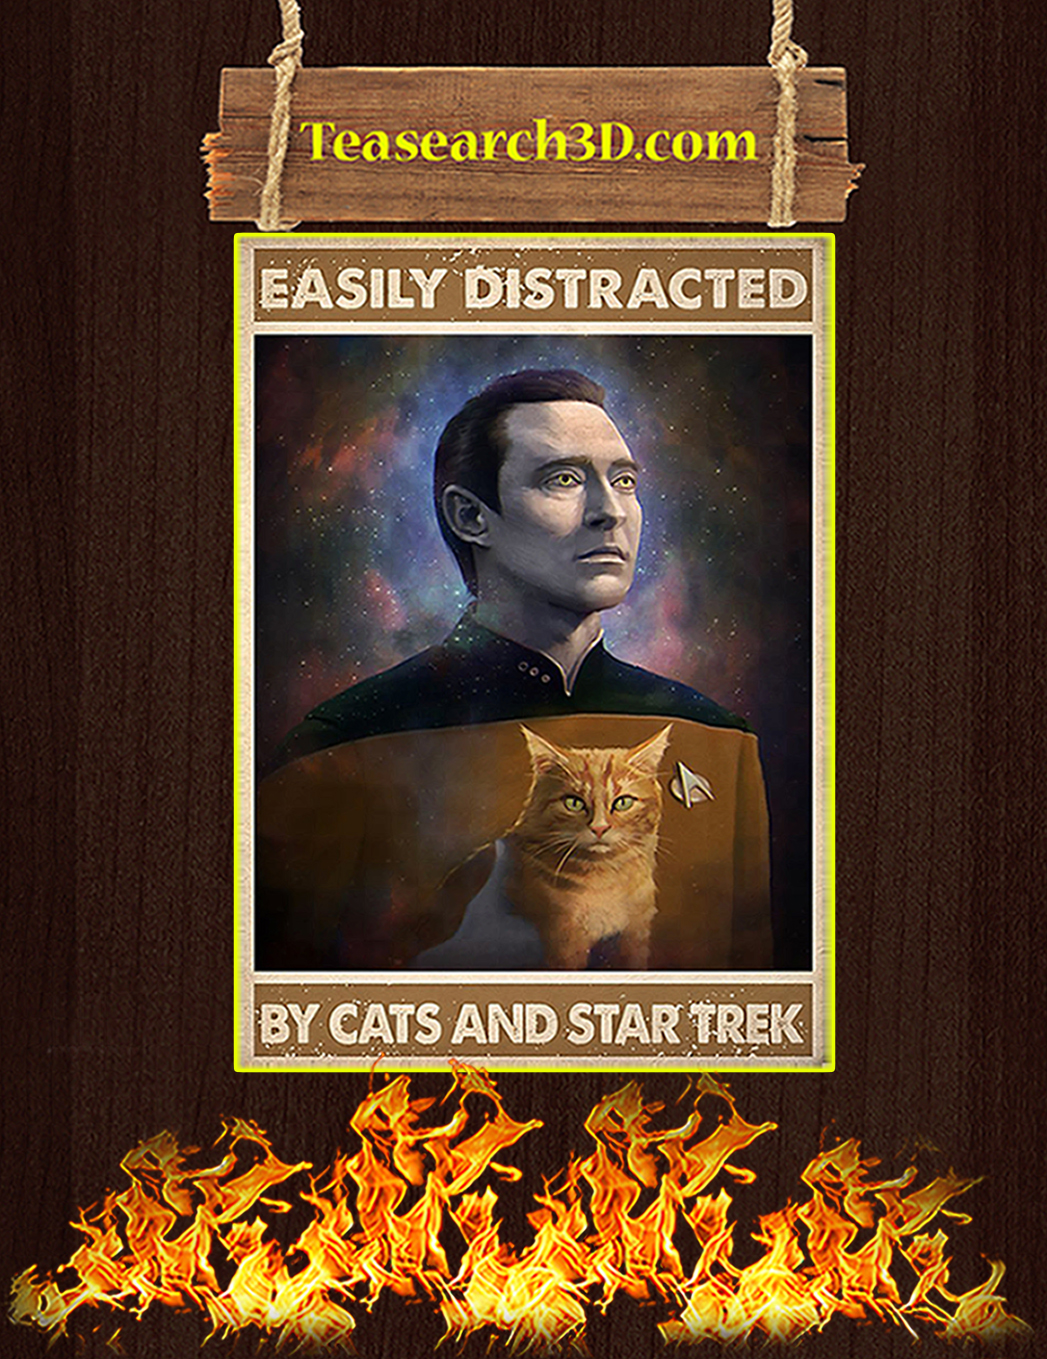 Easily distracted by cats and star trek poster A1